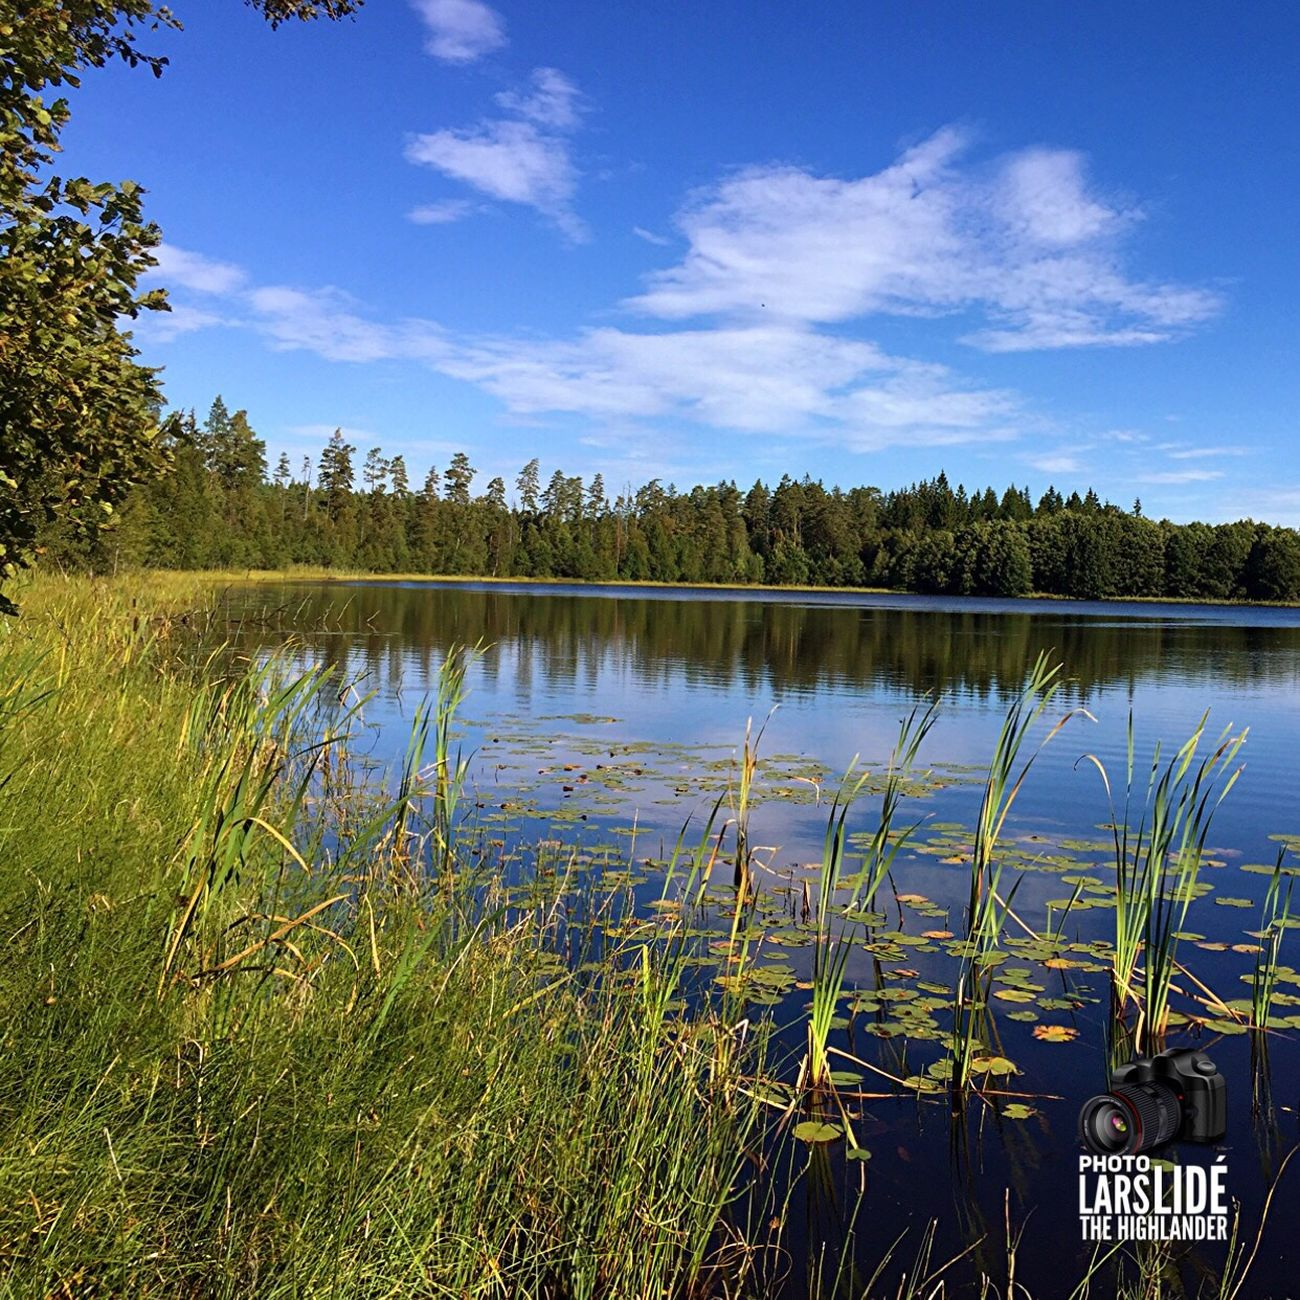 Water Lake Tree Blue Sky Grass Beauty In Nature Nature Countryside Outdoors Landscape_Collection Nature_collection Enjoying Life Taking Photos